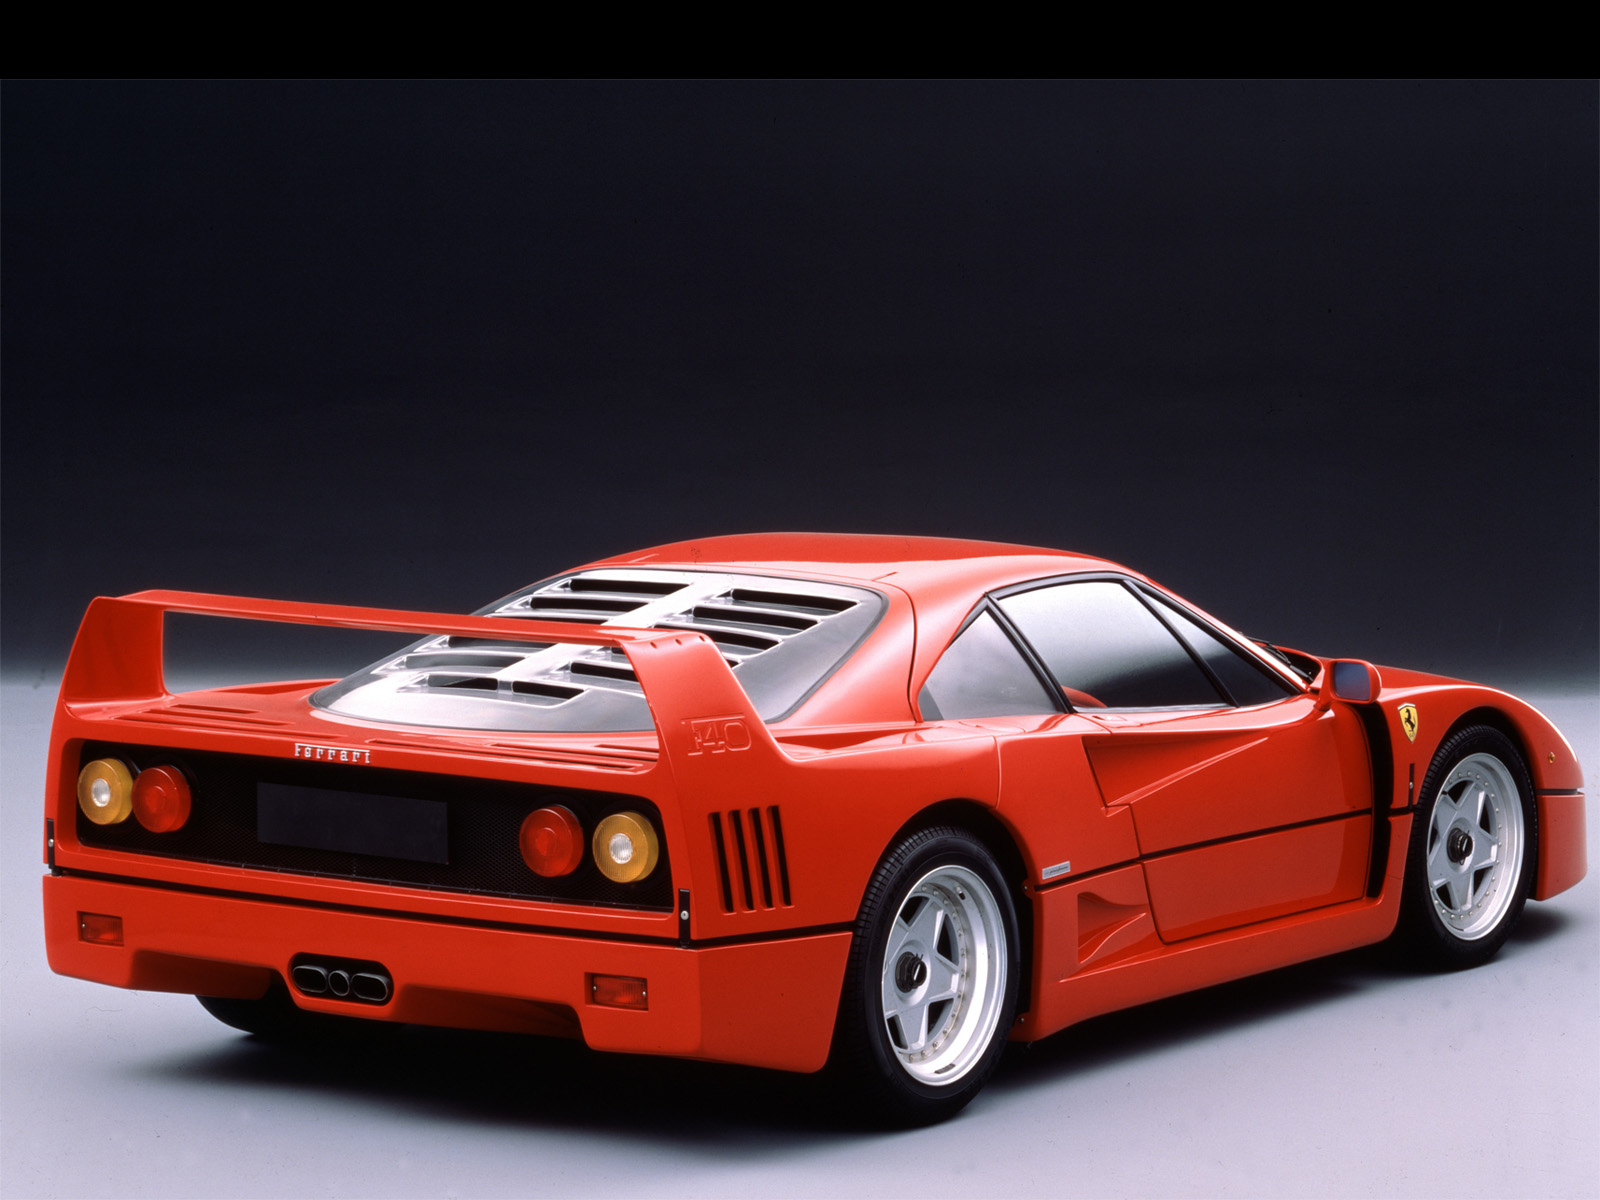 Ferrari F40 HR Manu World Cars Desktop Background